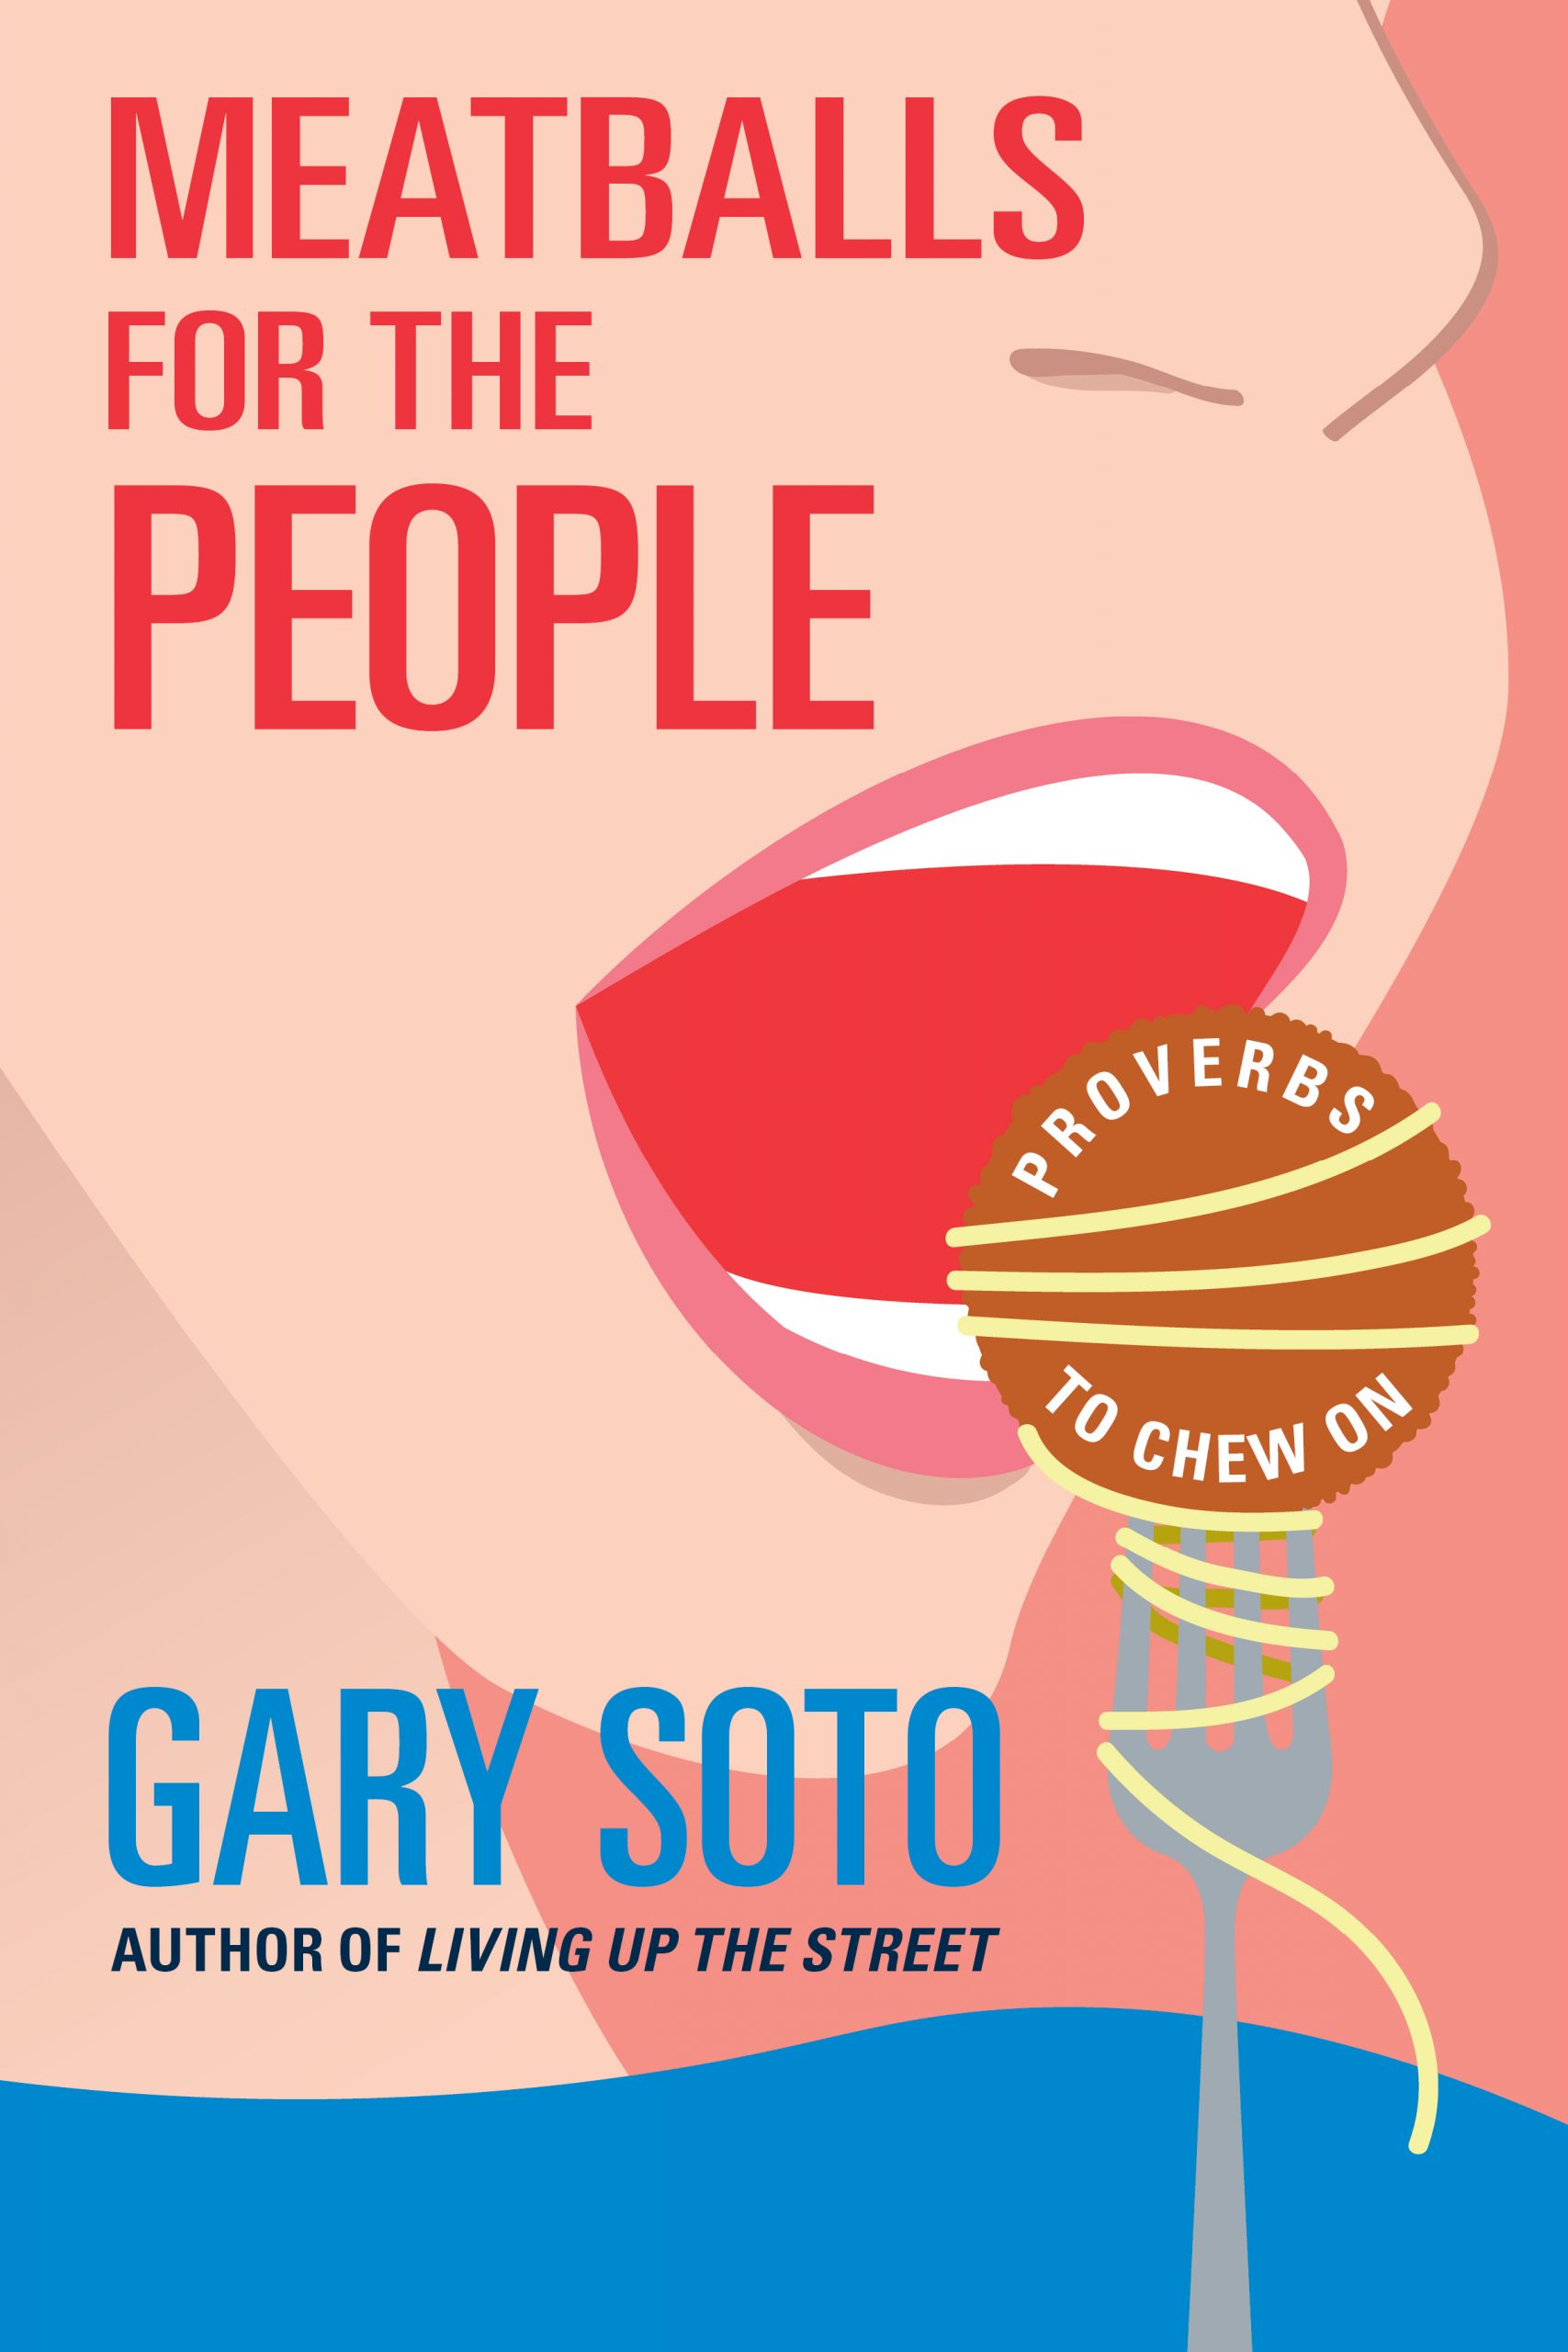 A graphic of a woman's face eating a meatball on a fork with script that reads Meatballs for the People by Gary Soto.